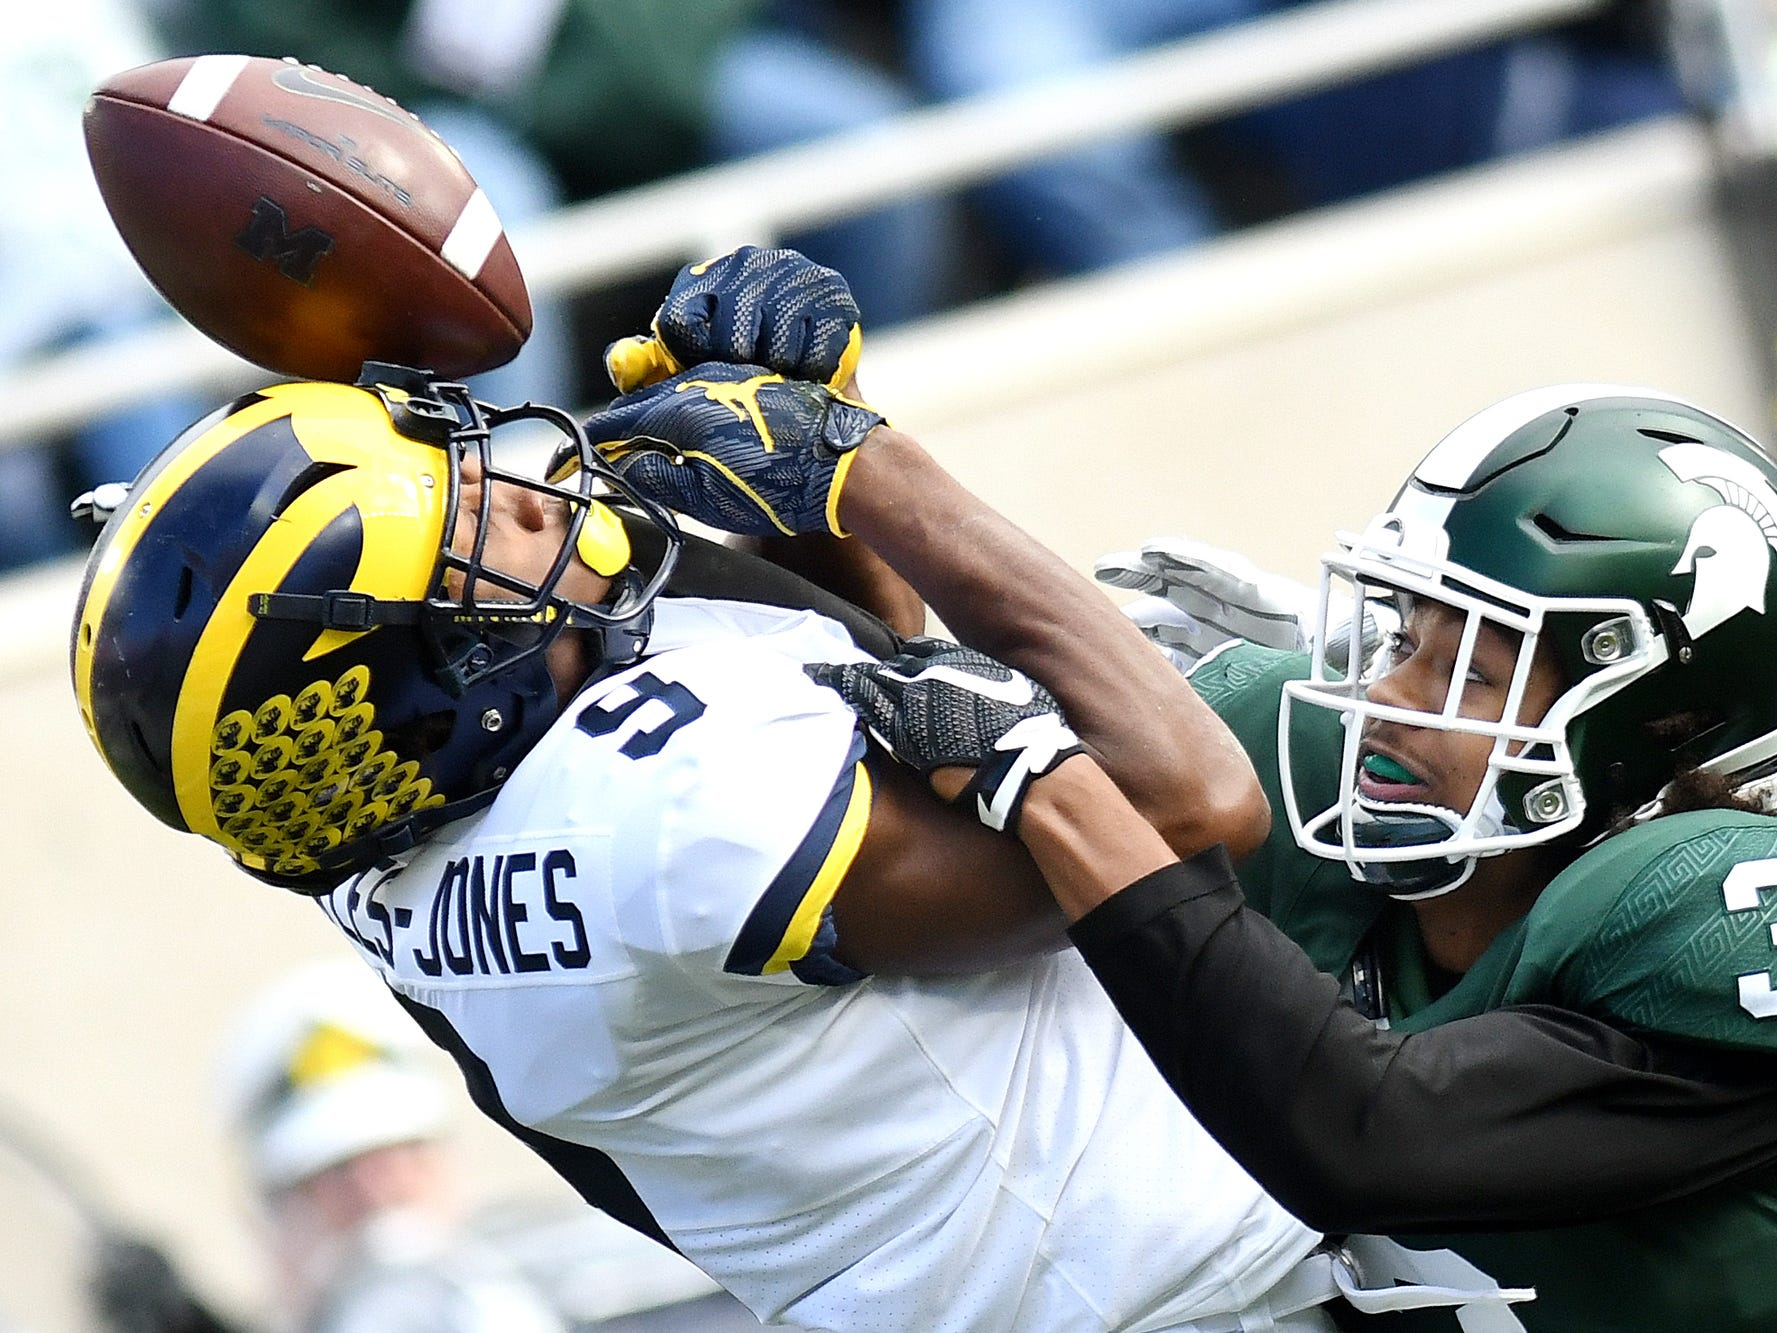 Michigan State's Xavier Henderson, right, breaks up a pass intended for Michigan's Donovan Peoples-Jones during the second quarter on Saturday, Oct. 20, 2018, in East Lansing.